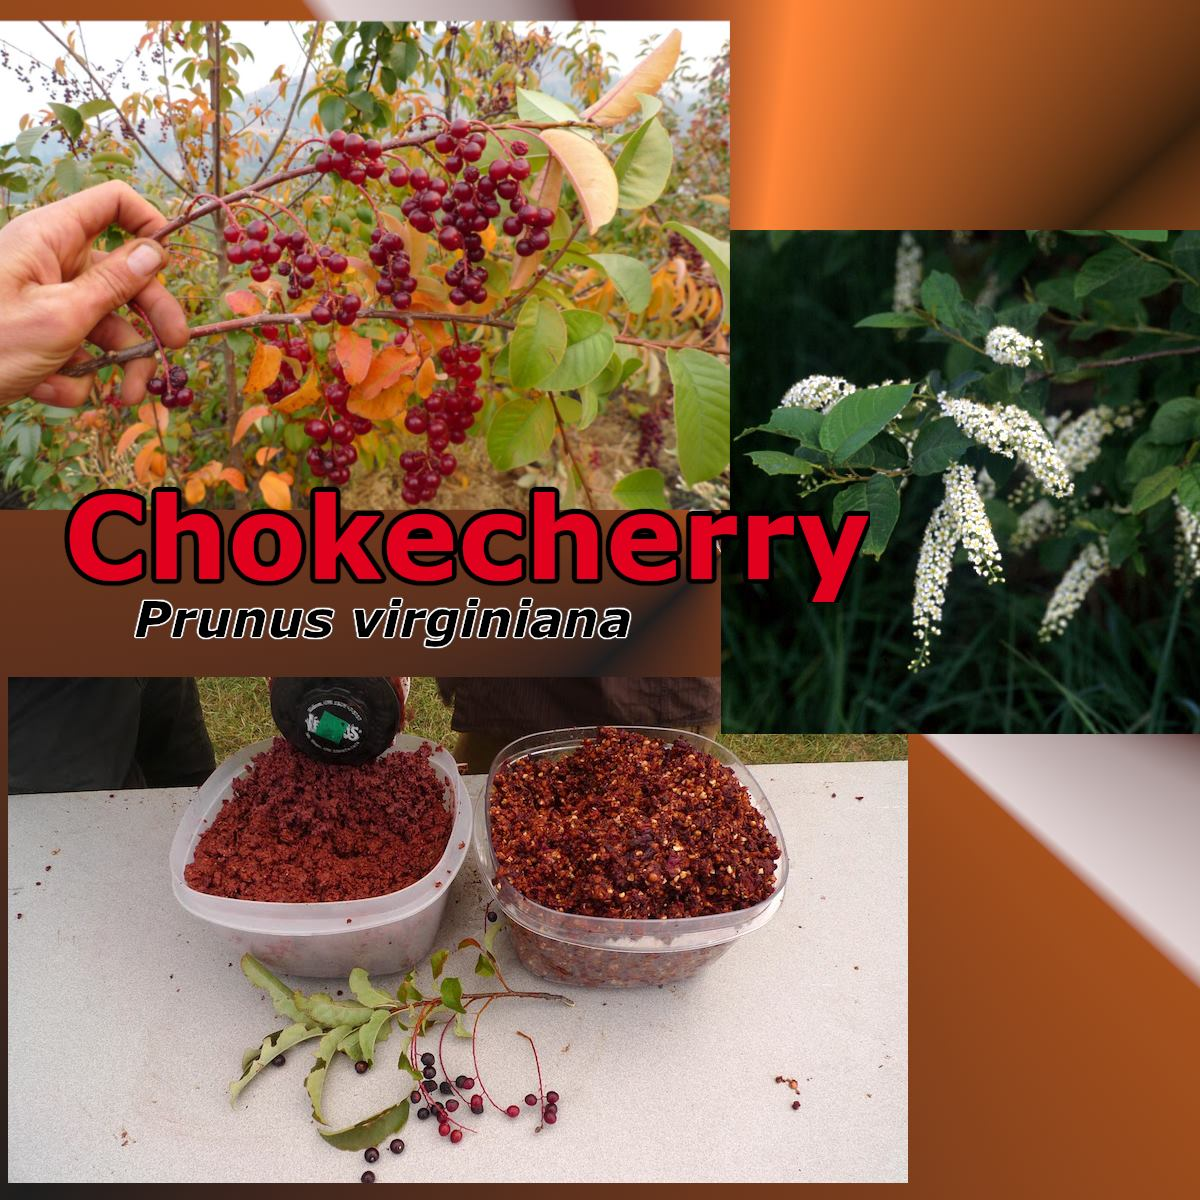 Photo Credit of the choke cherry fruits goes to Abe Loyd, see his blog on processing chokecherry here:  http://arcadianabe.blogspot.com/2012/10/chokecherry-from-dry-side-of-mountain.html